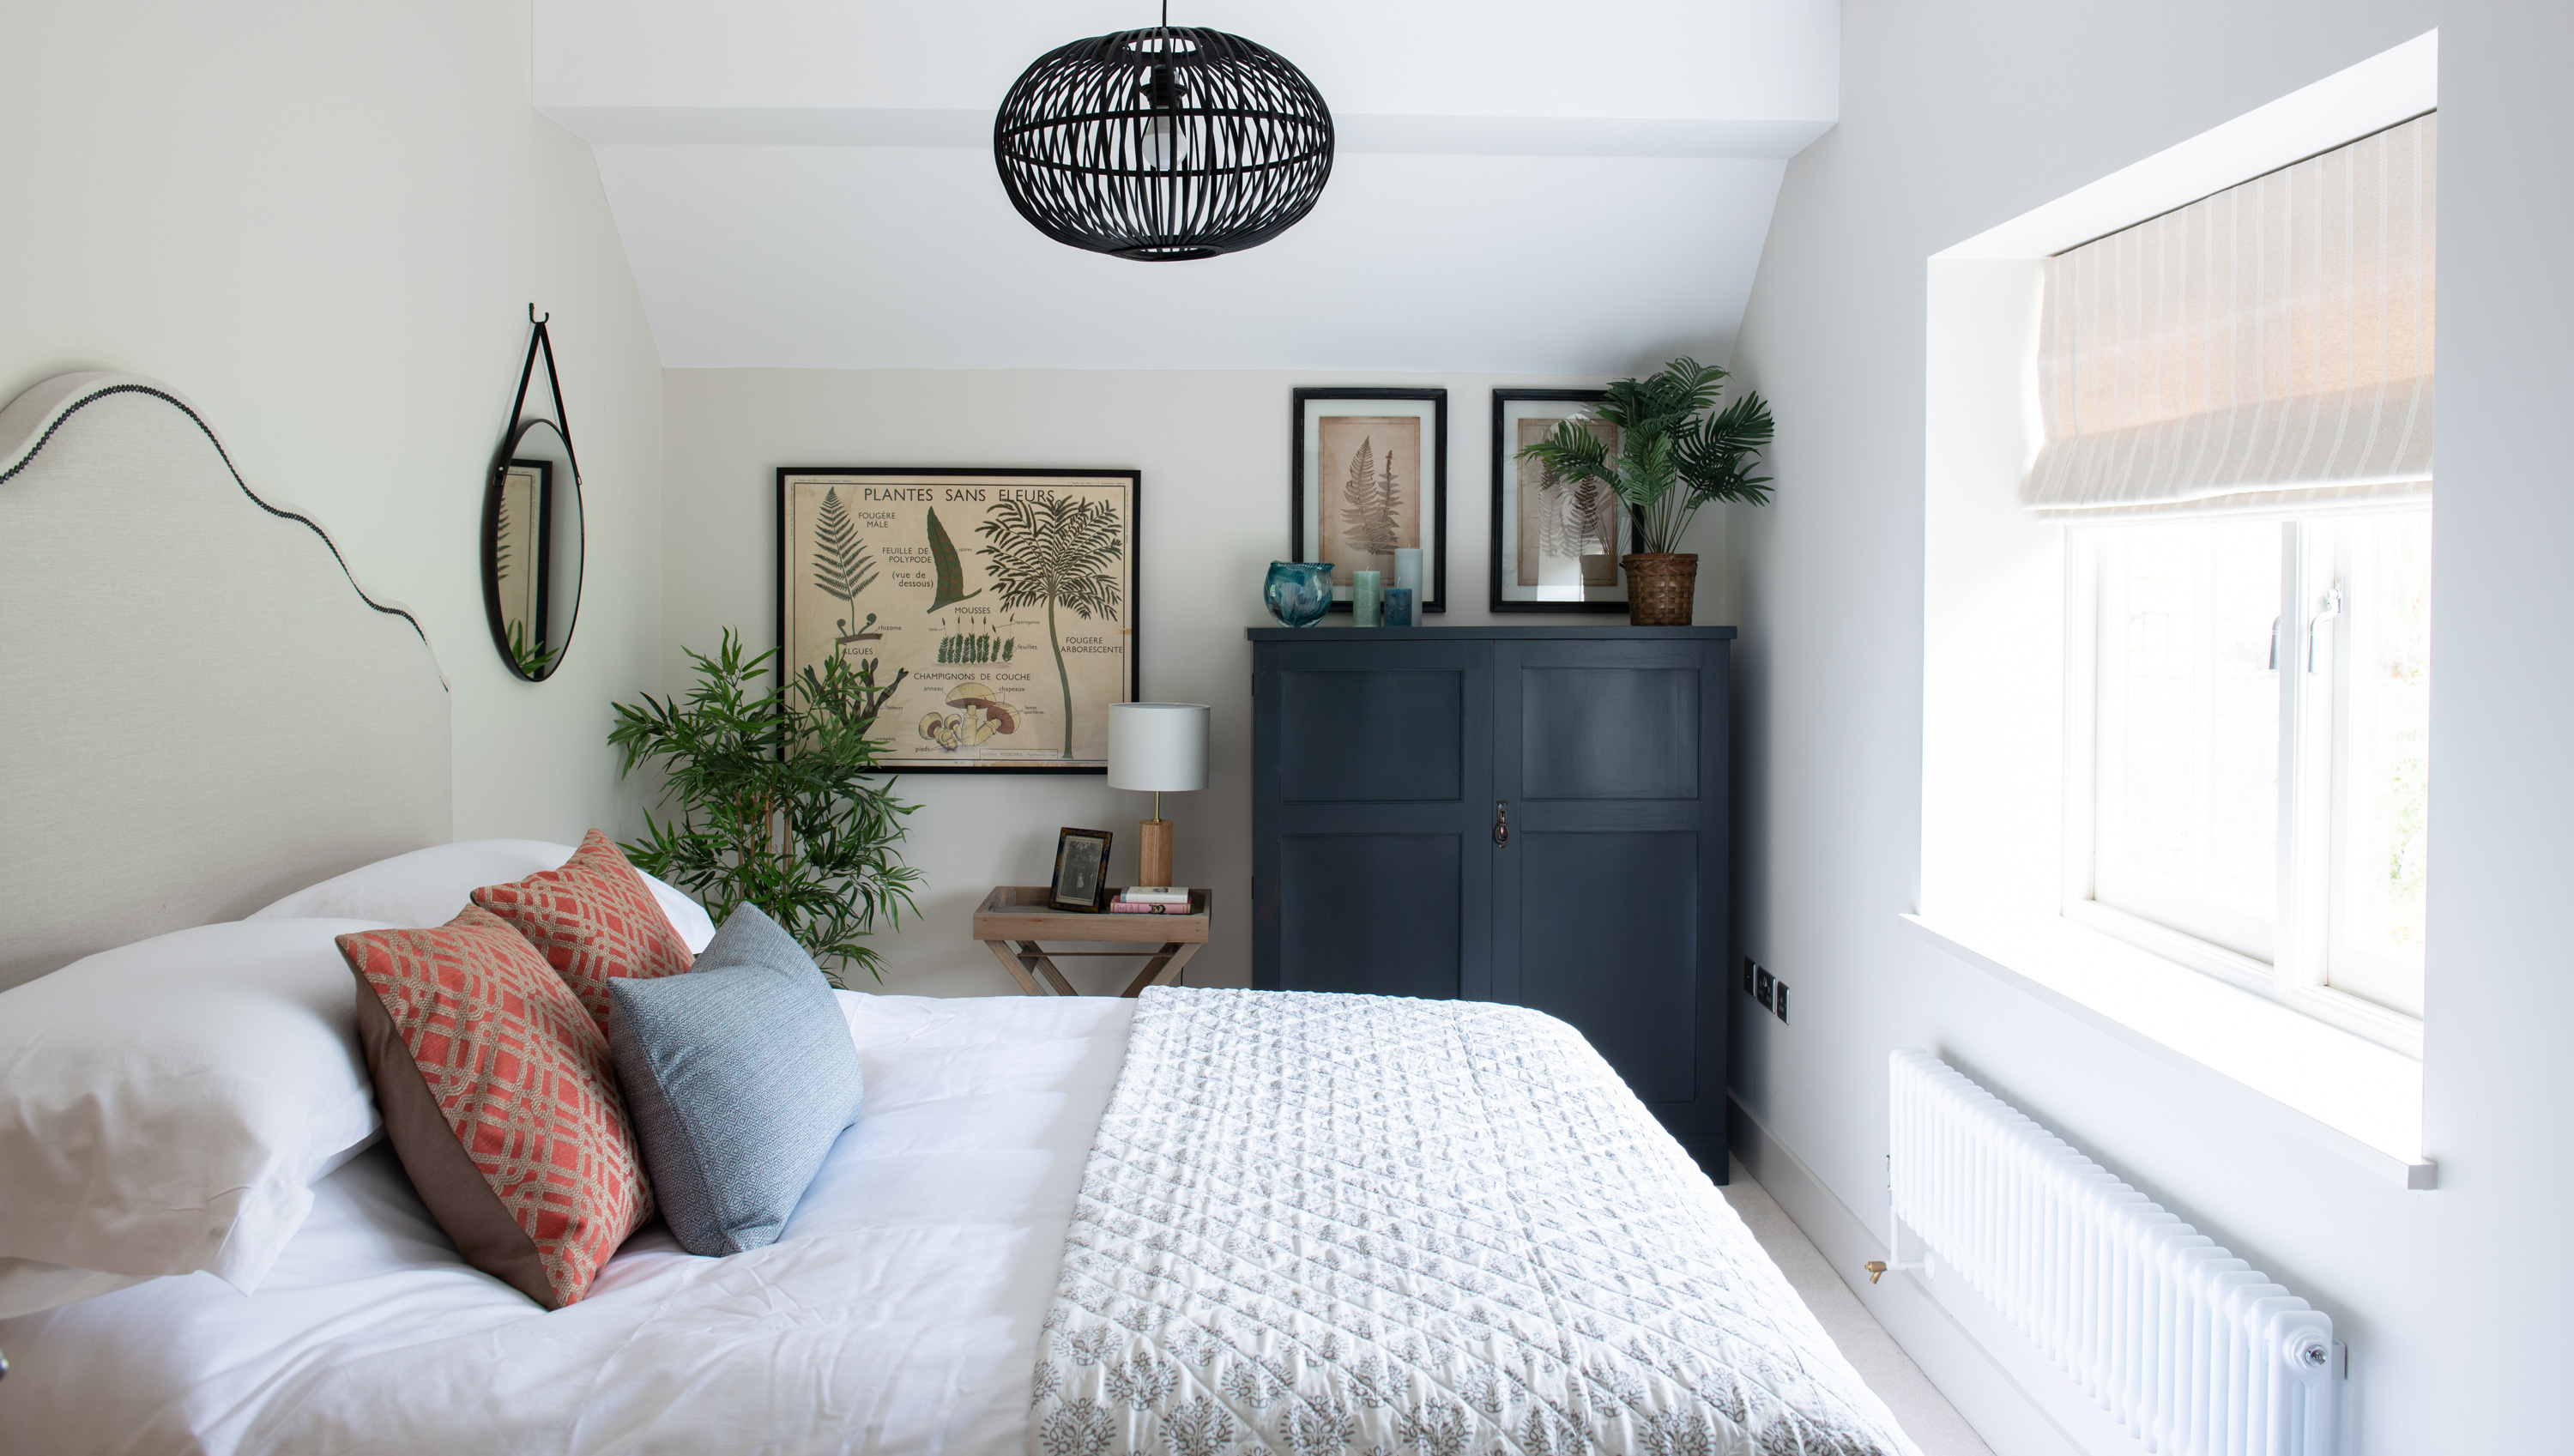 20 Small Bedroom Ideas Stylish Looks To Copy In A Tiny Space Real Homes